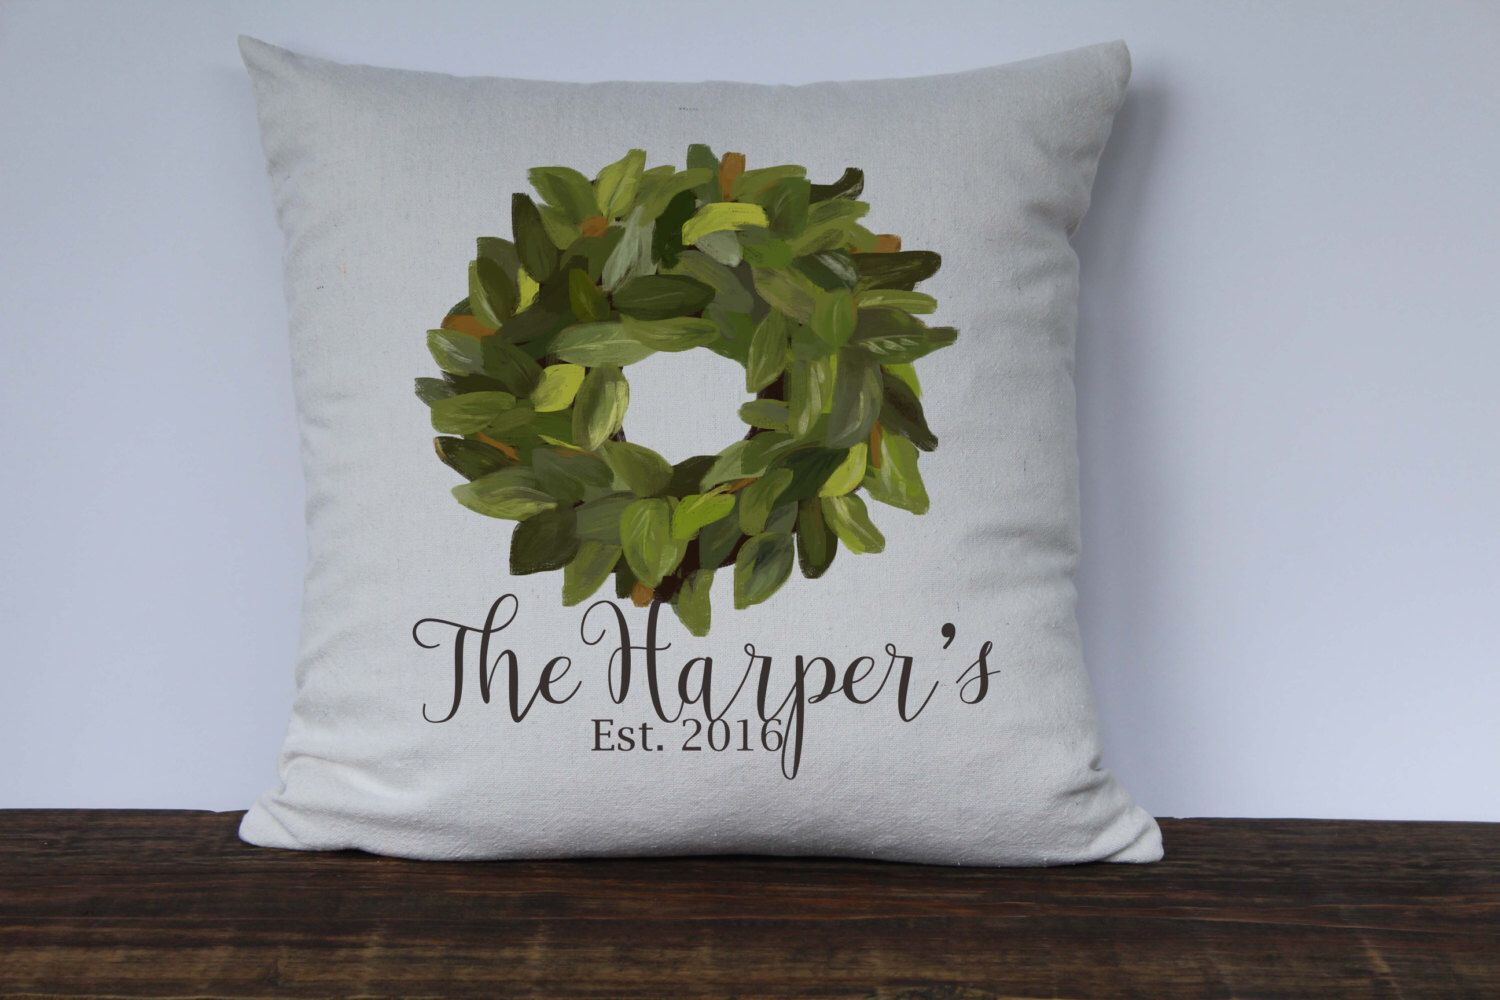 Farmhouse pillow personalized pillow decorative couch